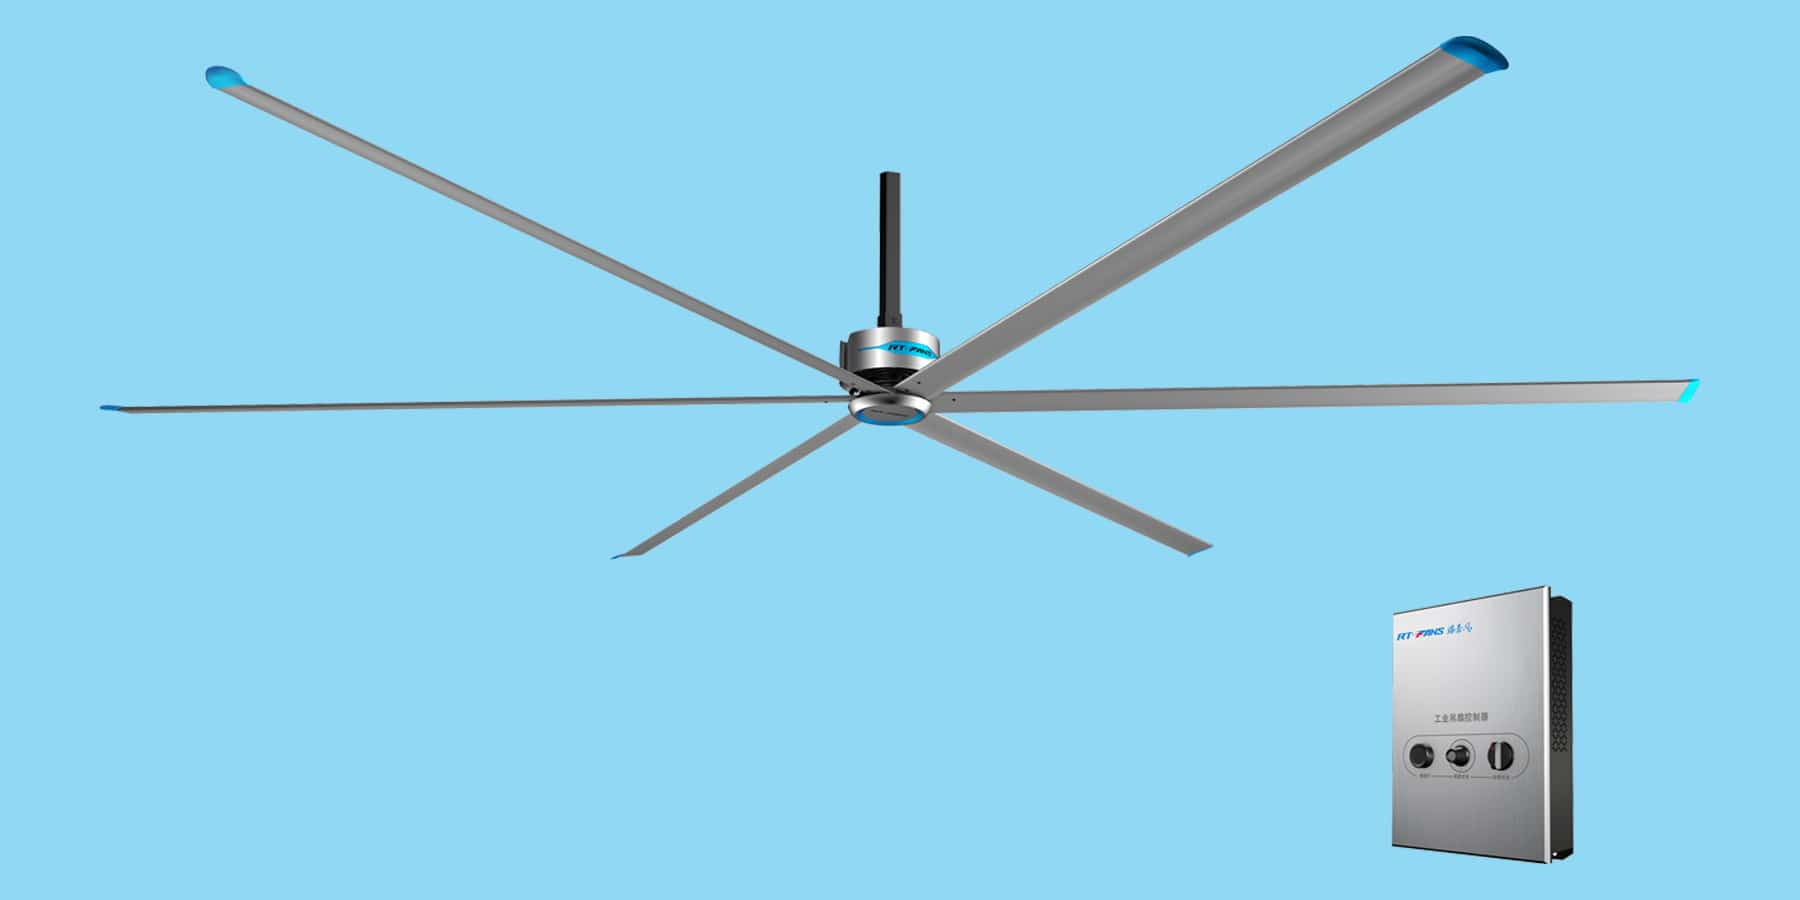 pmsm fan used for large spaces 03 min